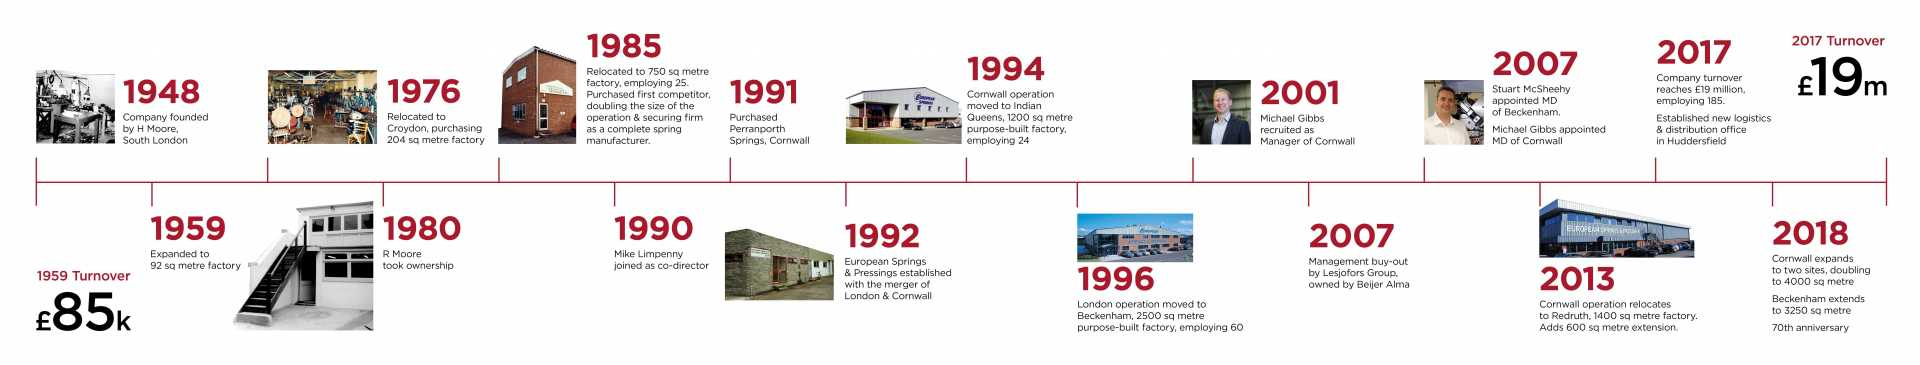 European Springs & Pressings - 70th Birthday Timeline